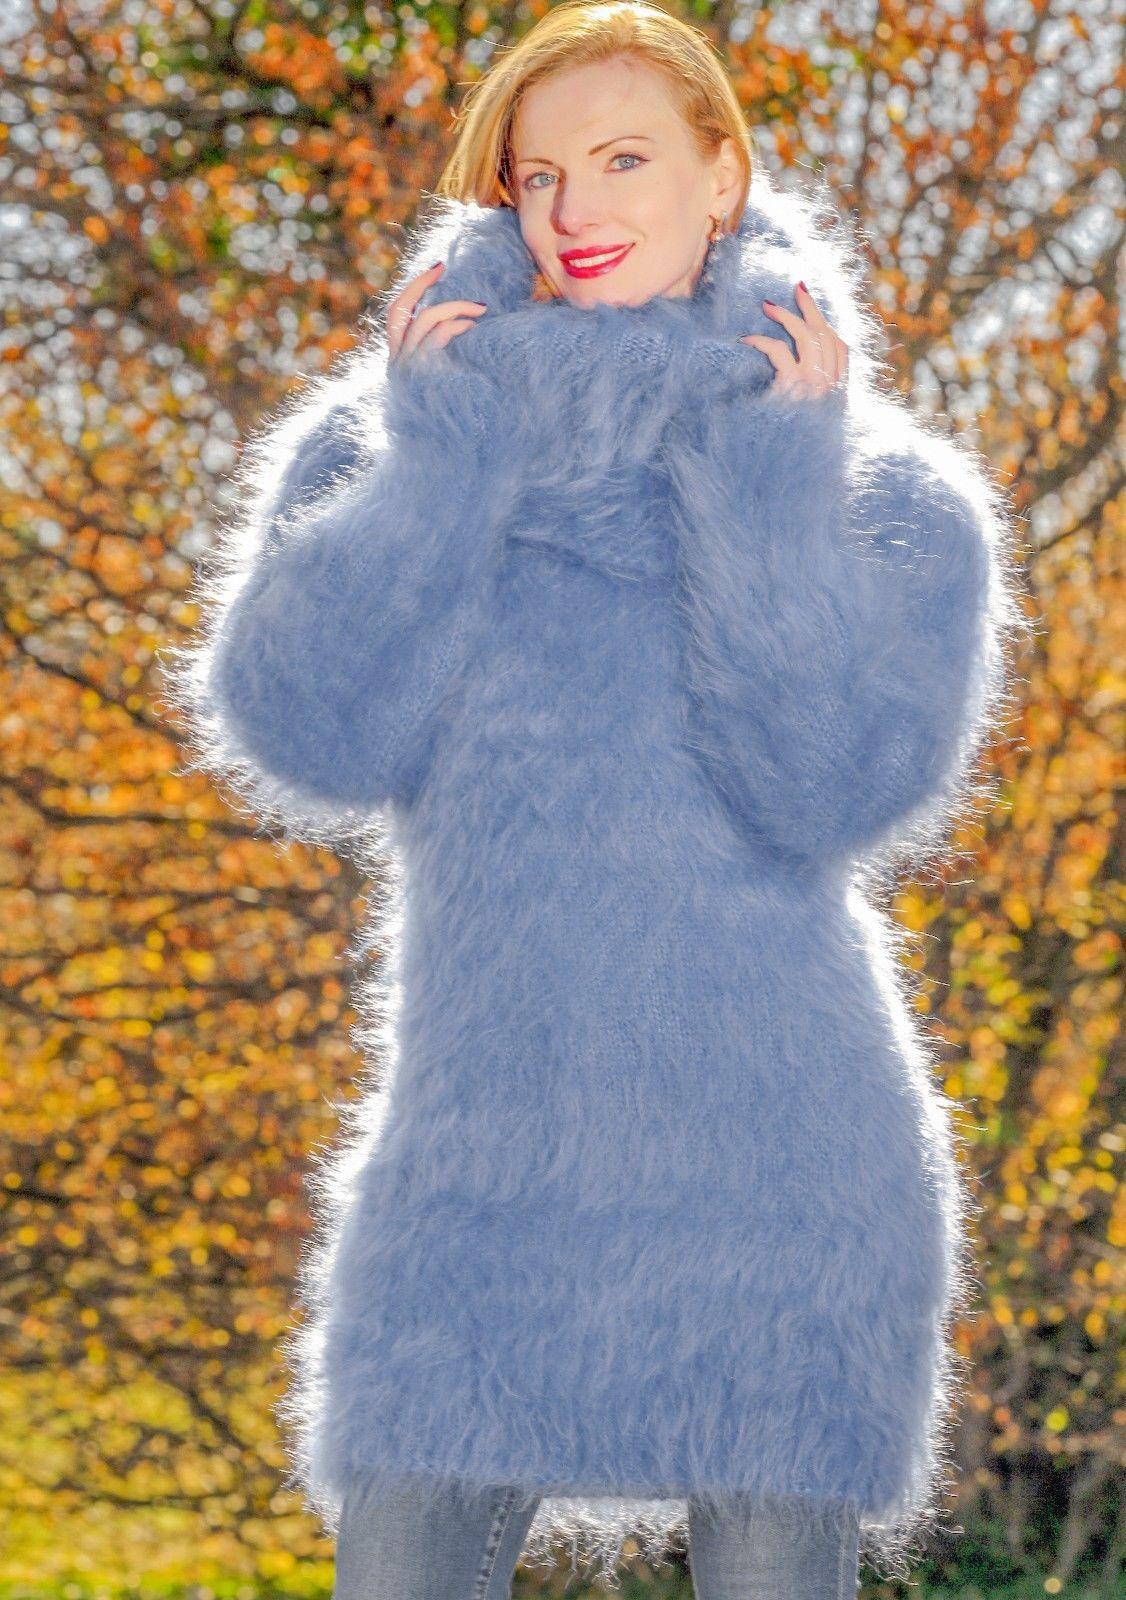 e551f253100 Fuzzy blue dress hand knitted mohair sweater with extra long turtleneck  SALE | eBay